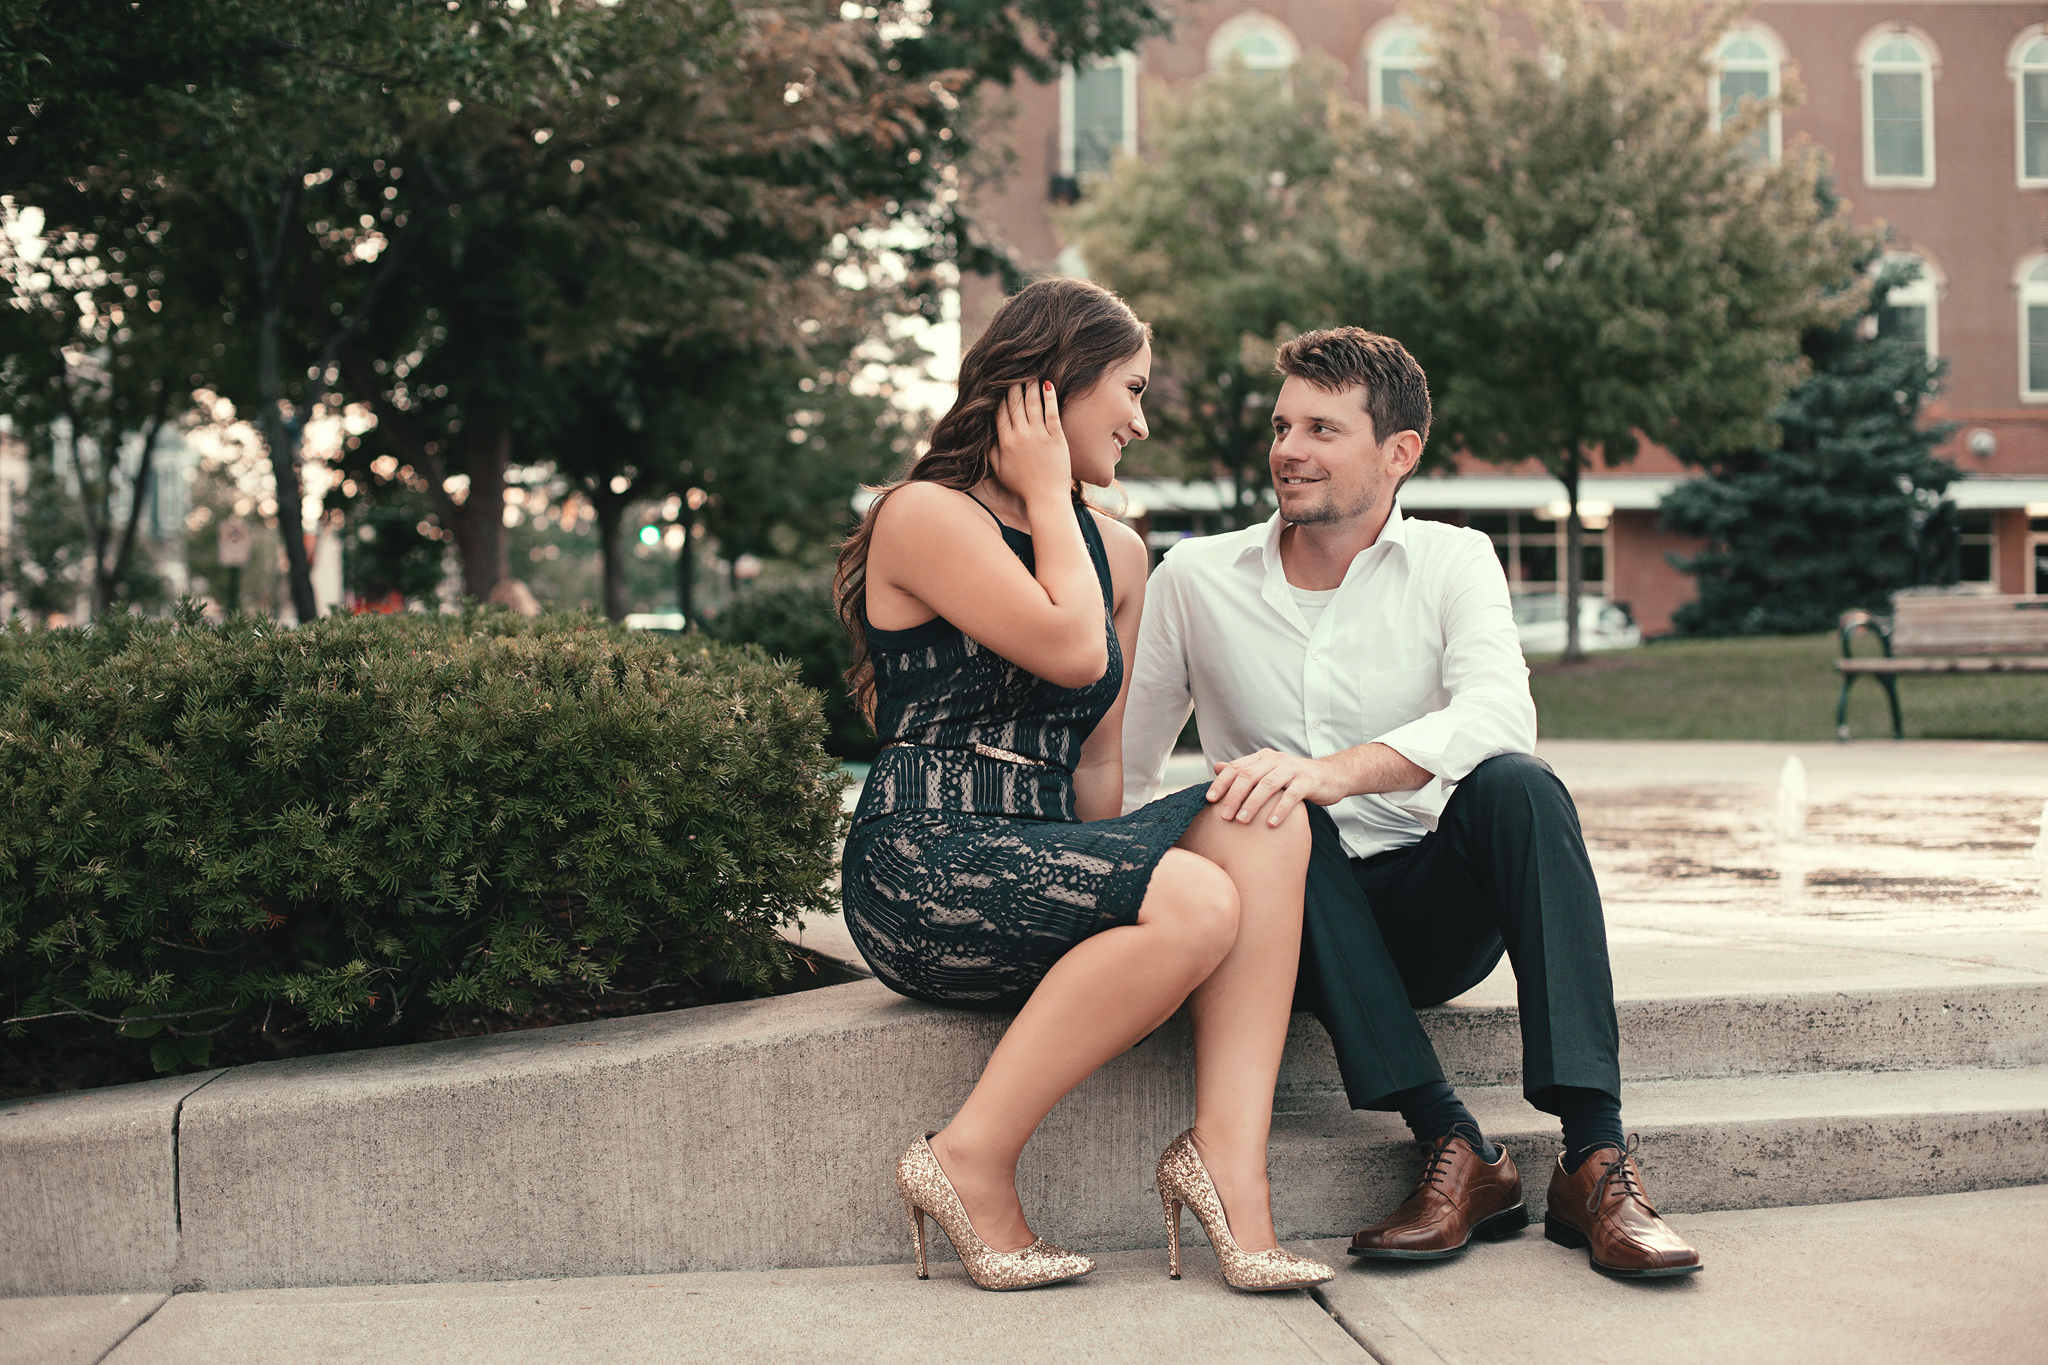 Cincinnati-and-Dayton-OH-Engagement-Session-and-Wedding-photographer-11.jpg